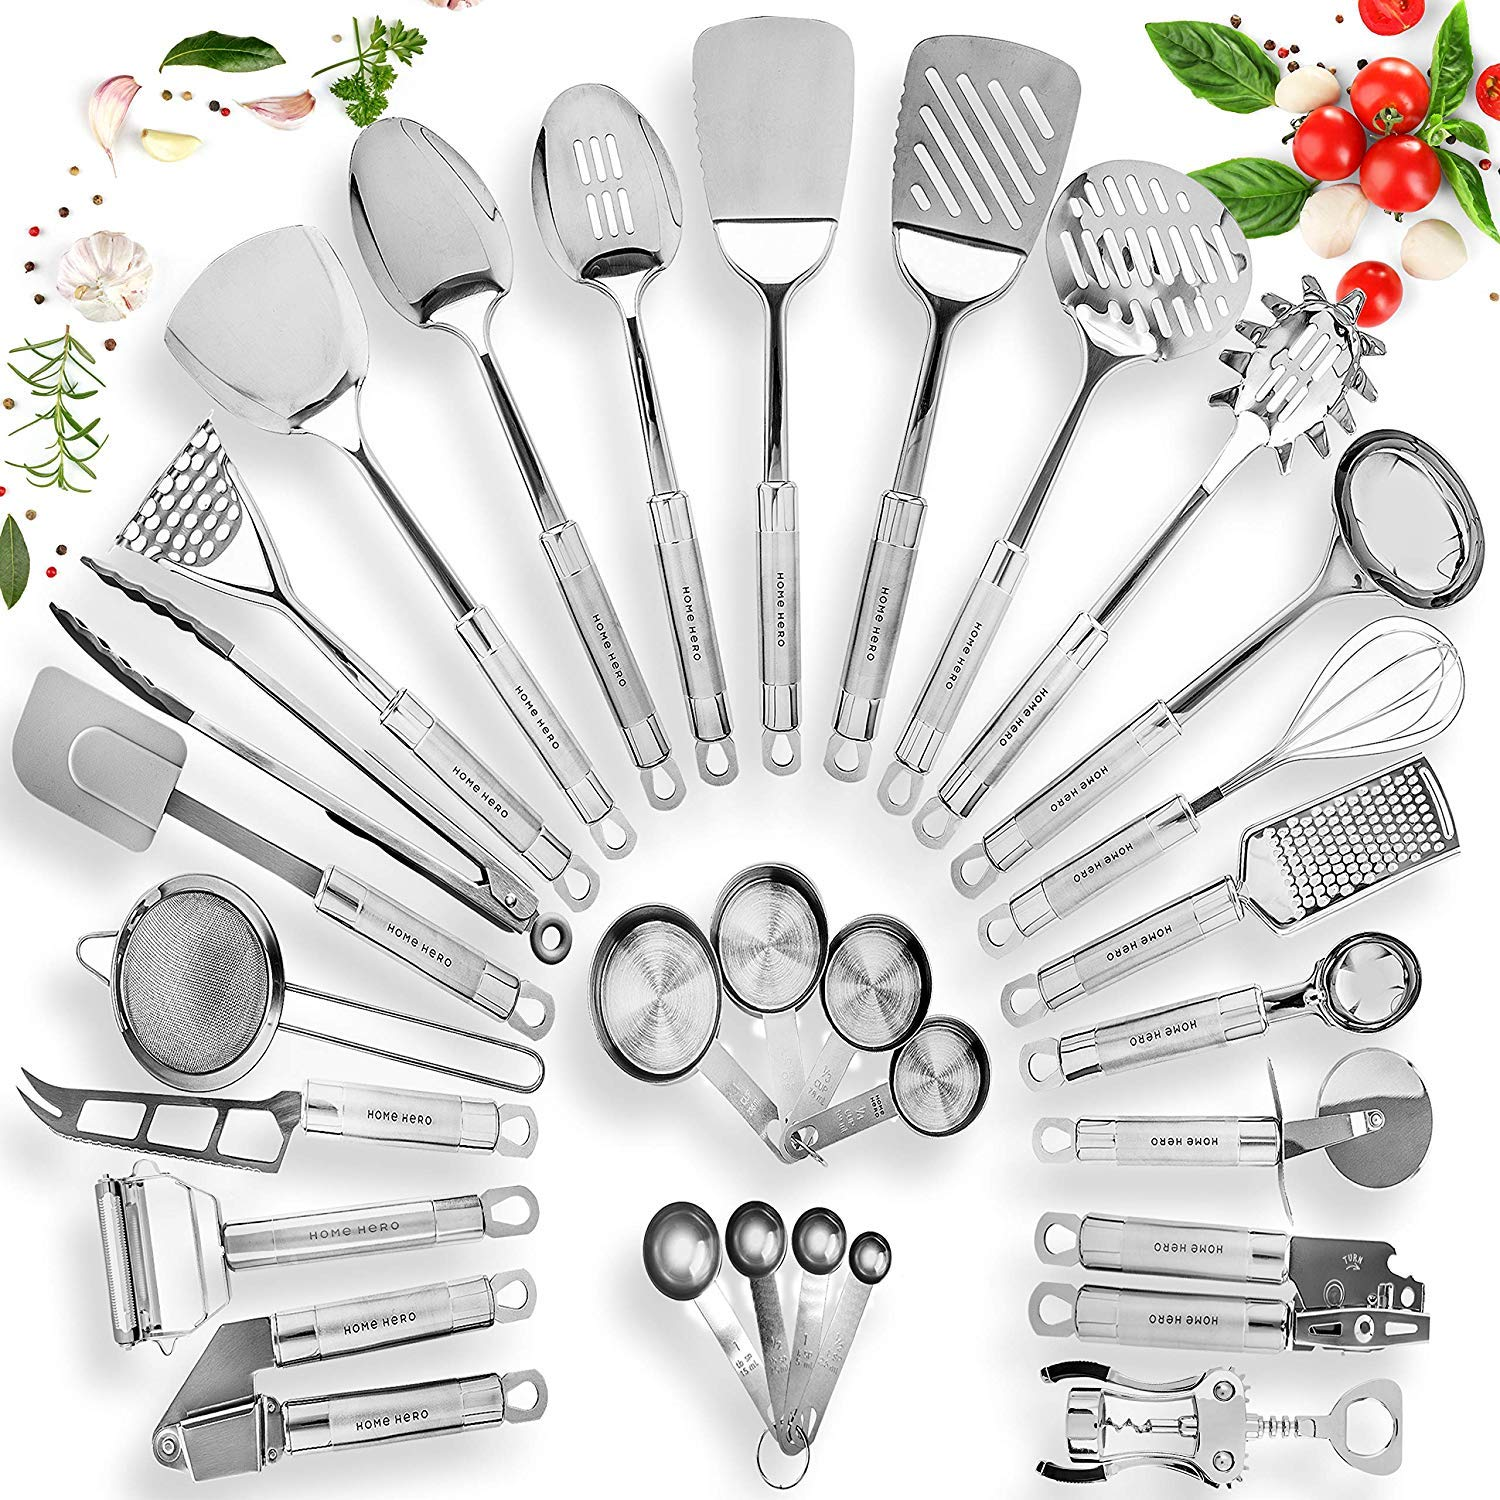 Home Hero Stainless Steel Kitchen Utensil Set - 29 Cooking Utensils - Nonstick Kitchen Utensils Cookware Set with Spatula - Best Kitchen Gadgets Kitchen